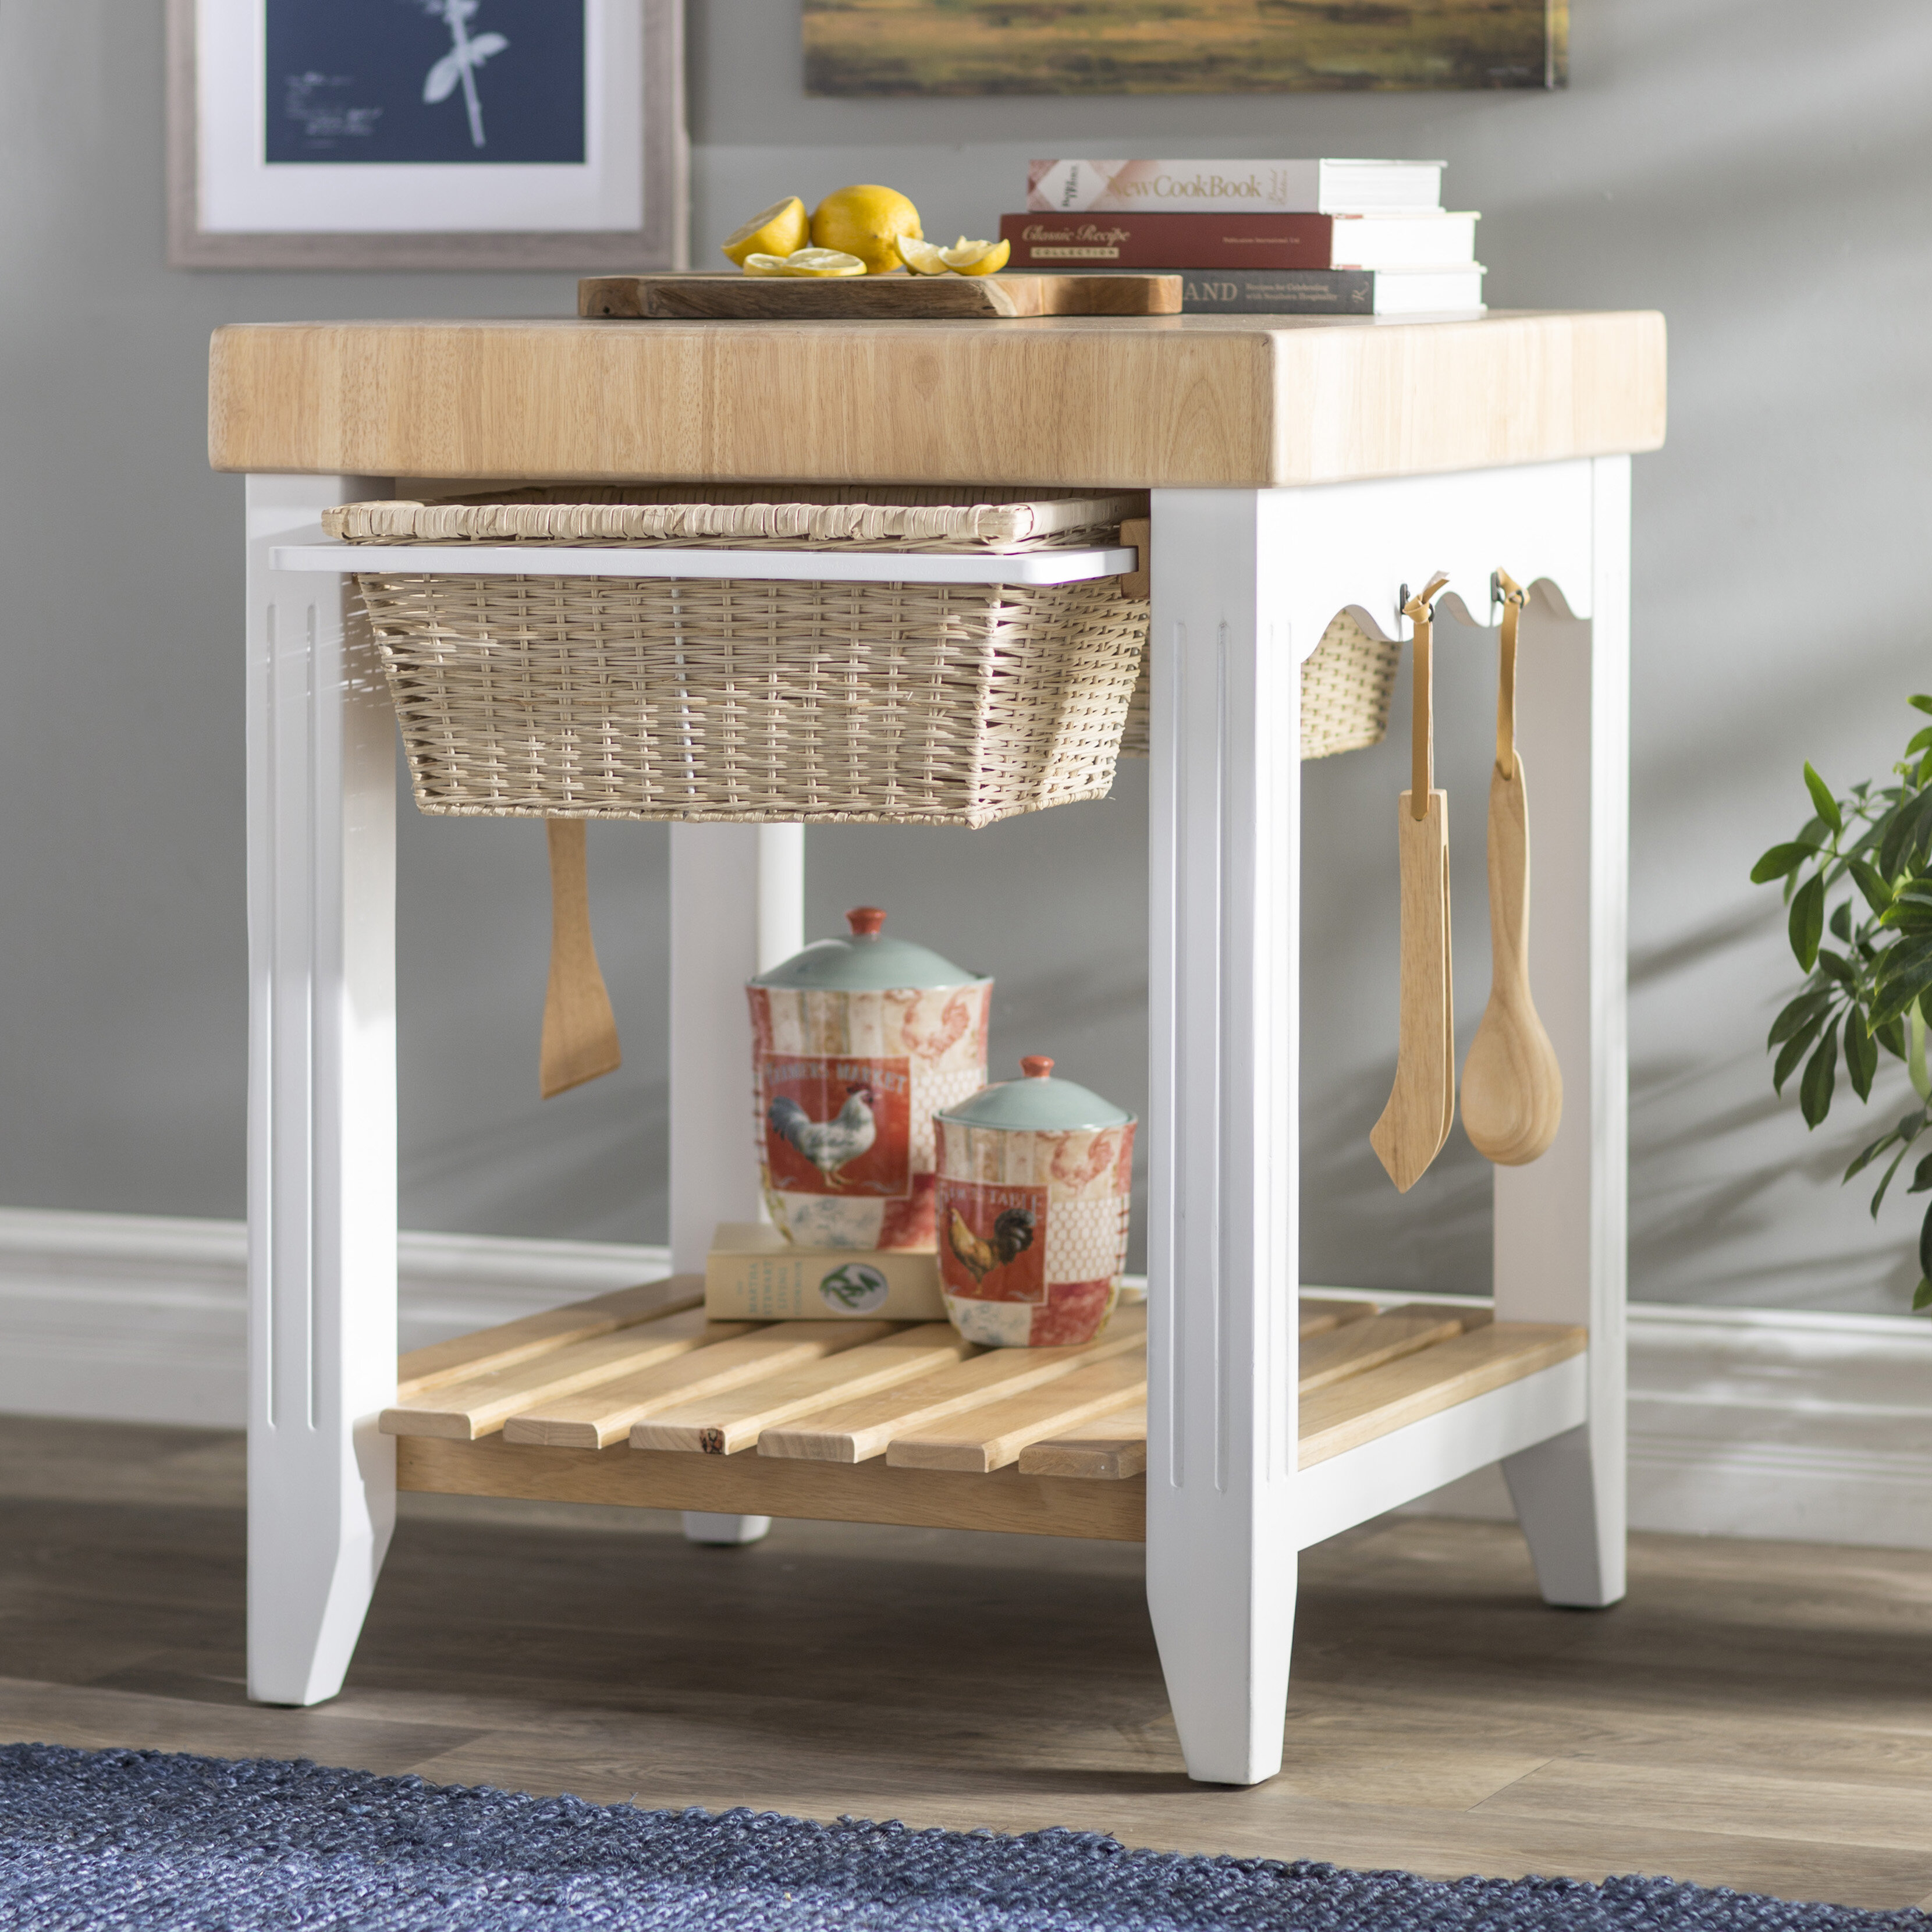 Red Barrel Studio Behling Prep Table With Butcher Block Top Reviews Wayfair Ca